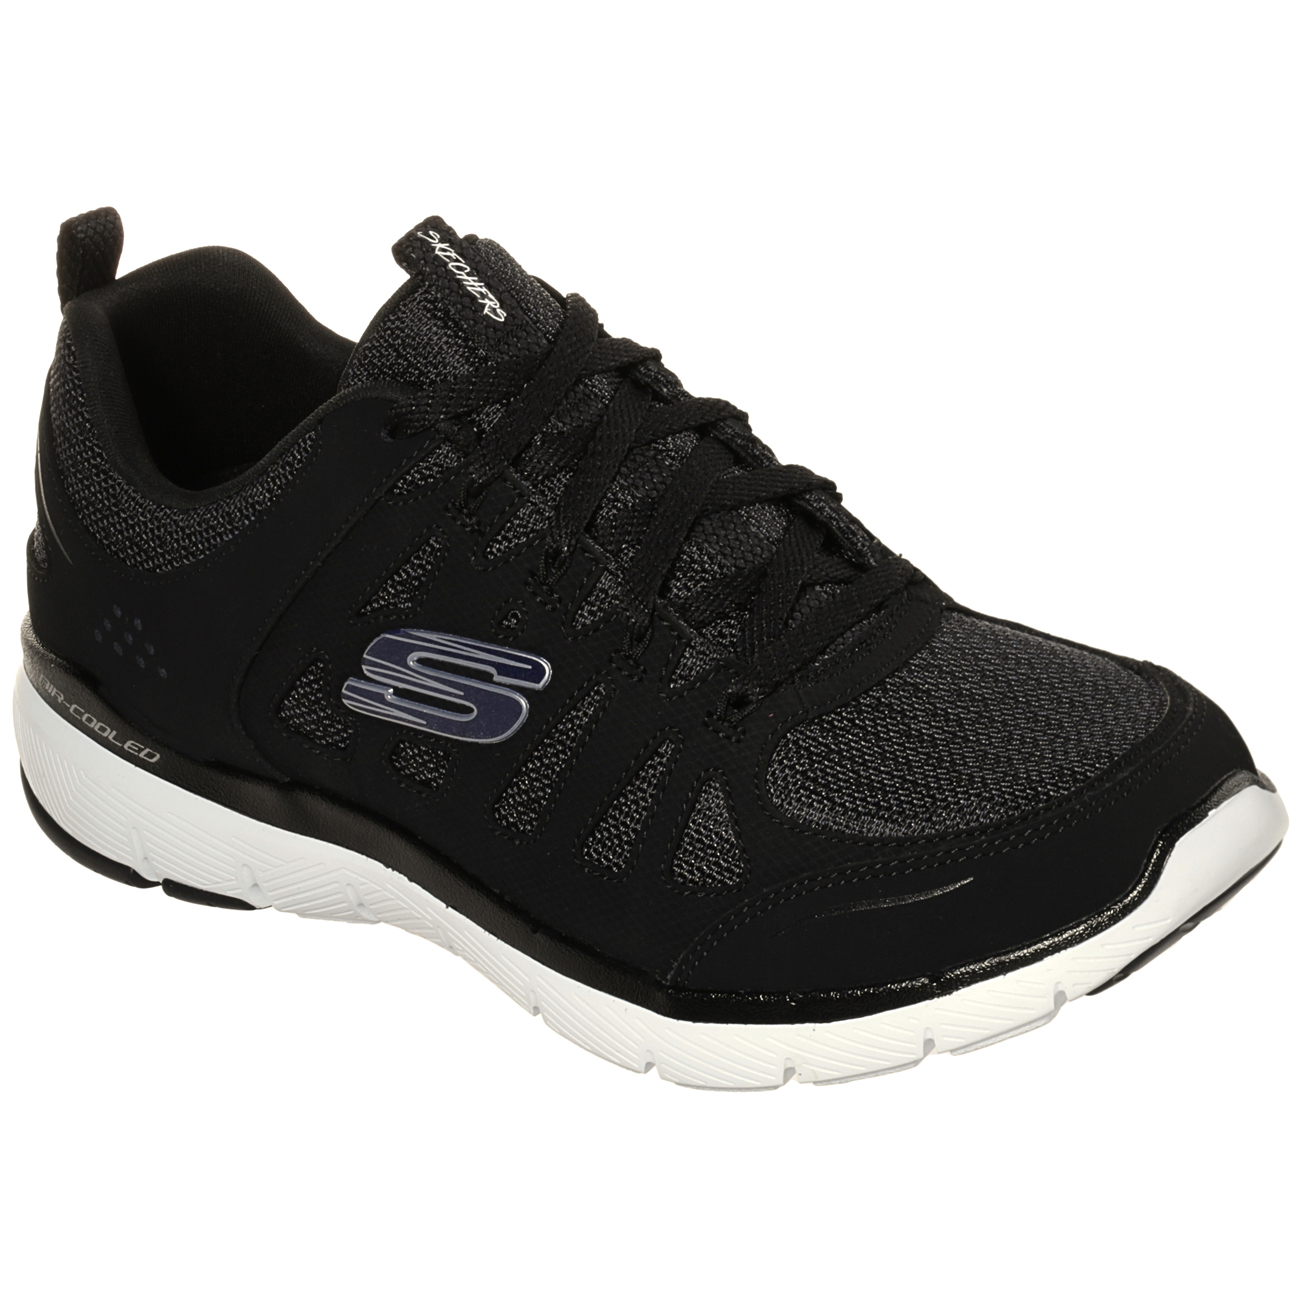 Skechers Flex Appeal 3.0 Billow